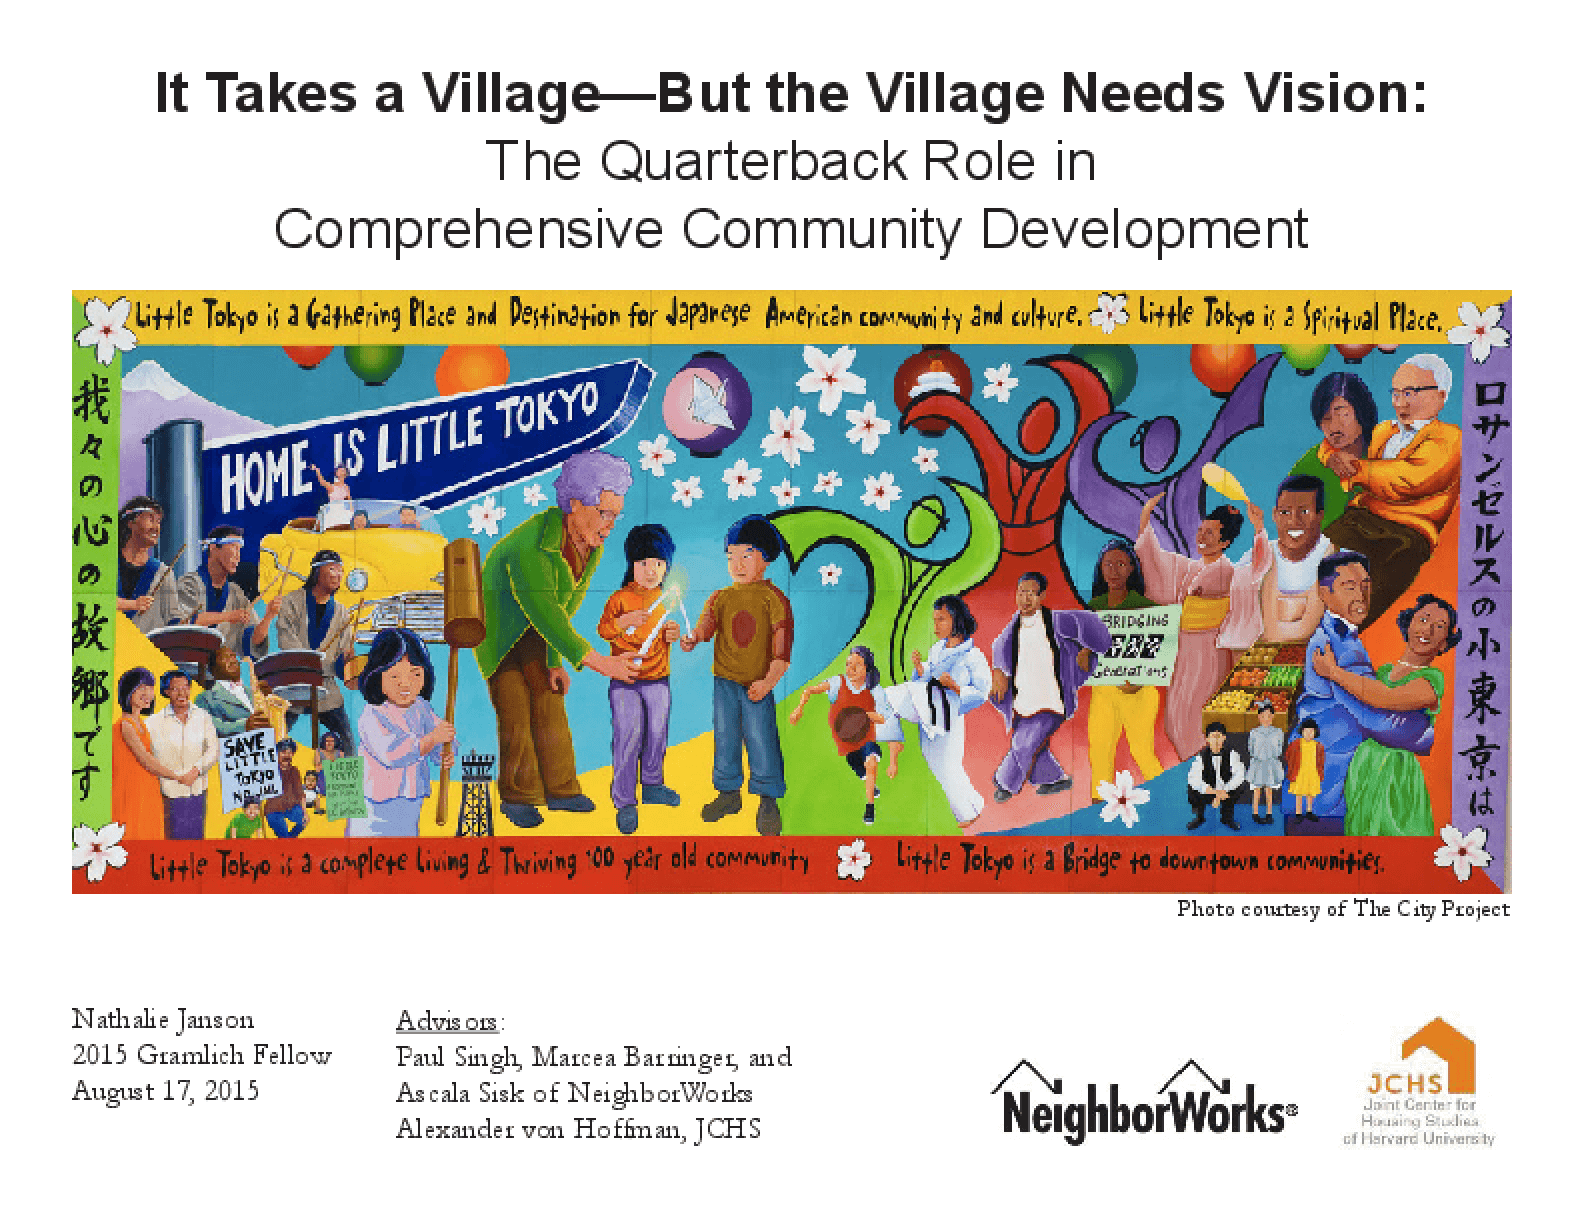 It Takes a Village -- But the Village Needs Vision: The Quarterback Role in Comprehensive Community Development